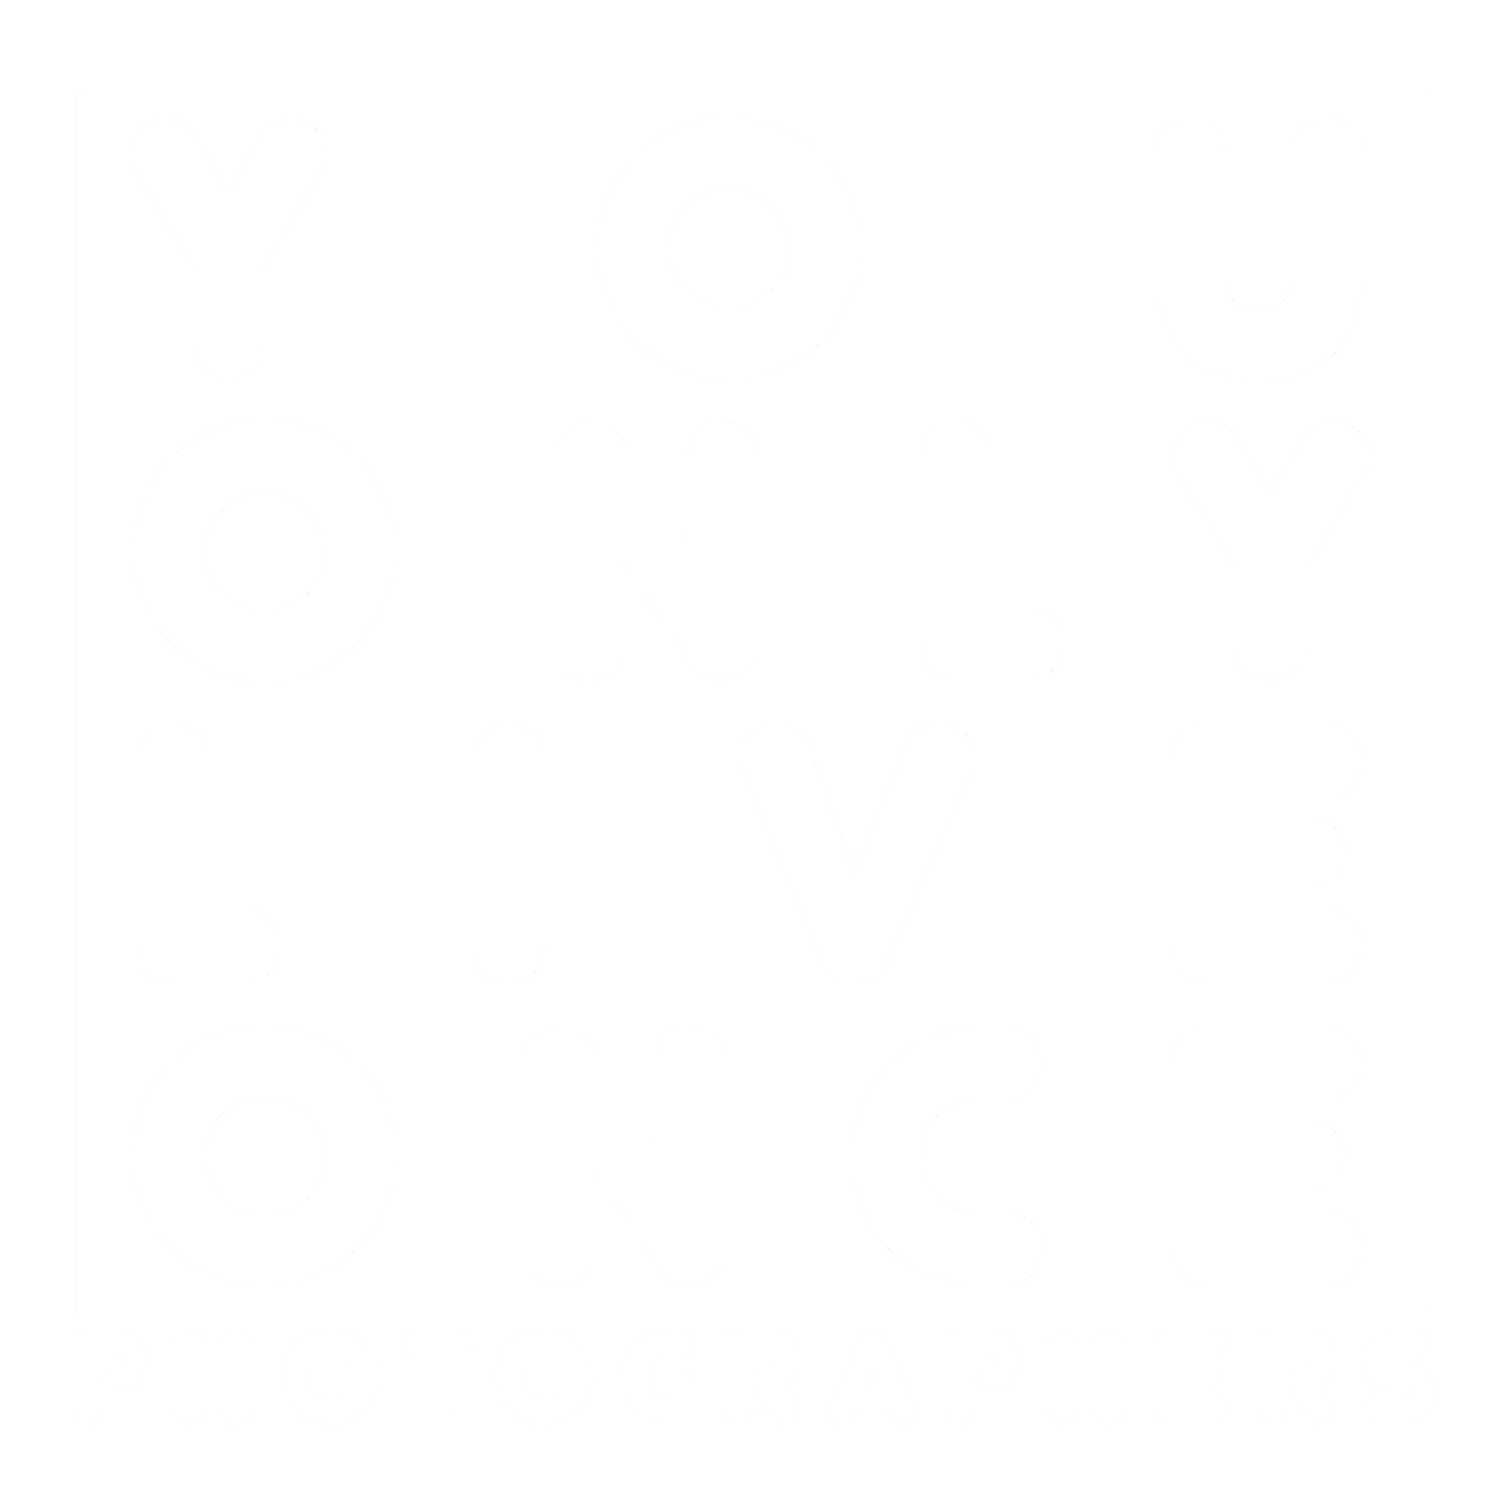 You Only Live Once - Photographers